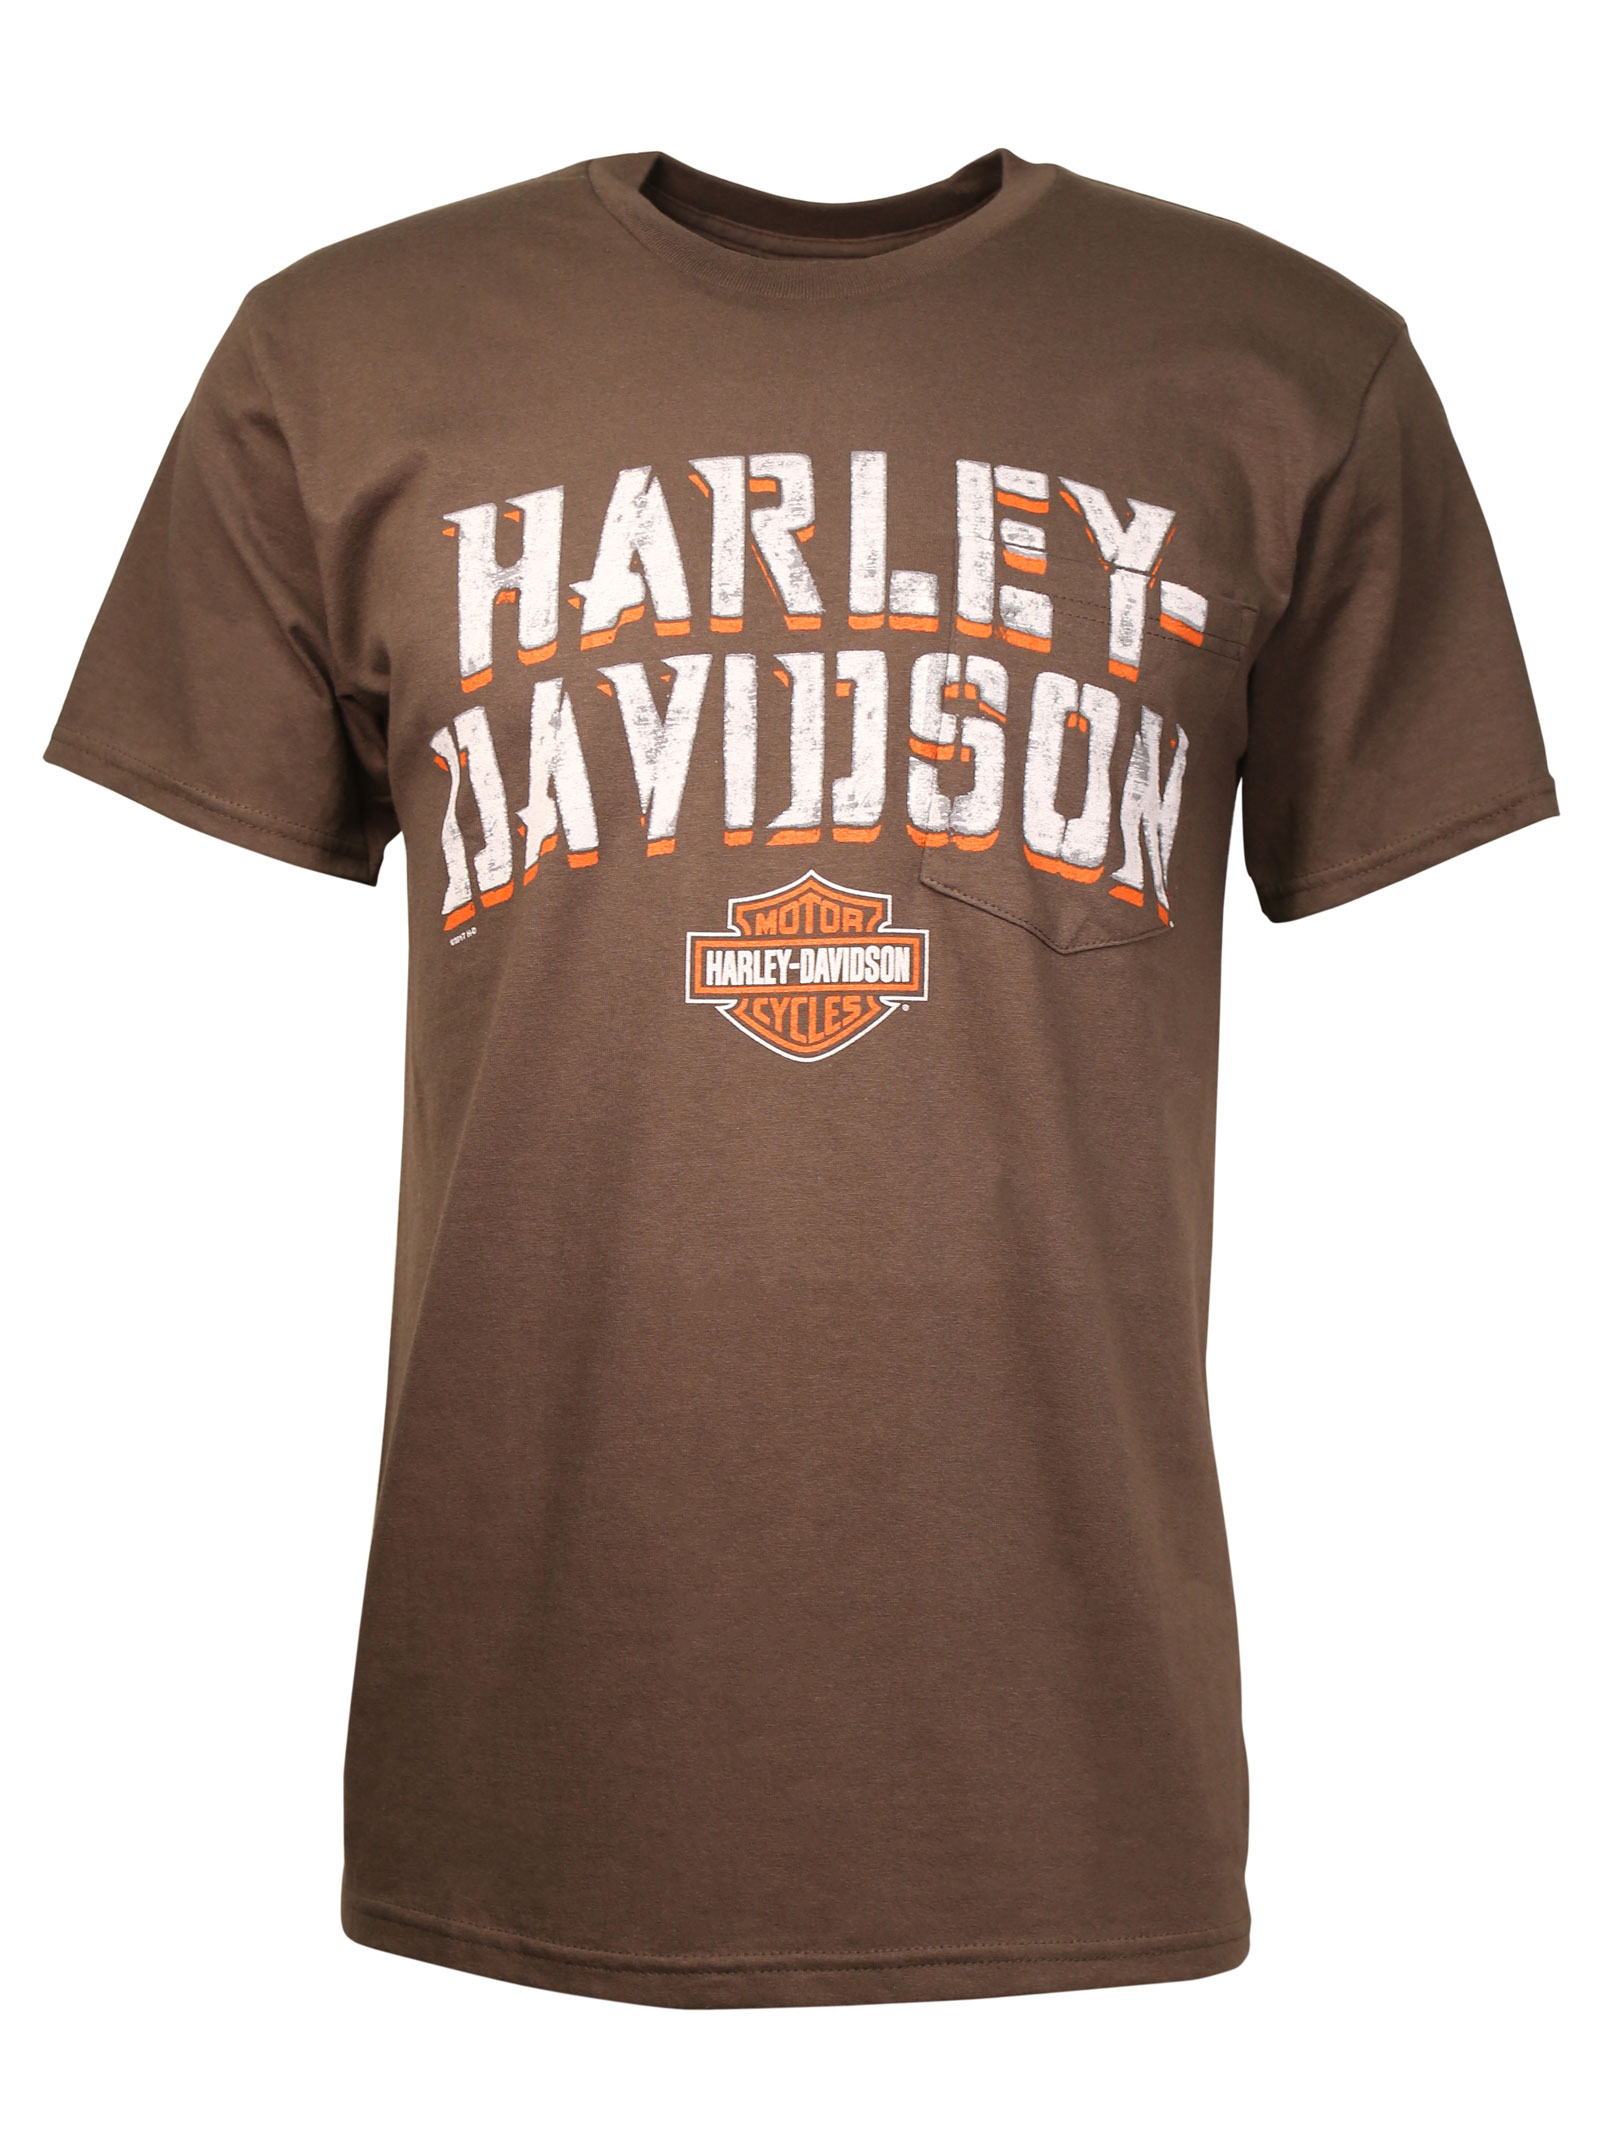 harley davidson t shirt roadside decay at thunderbike shop. Black Bedroom Furniture Sets. Home Design Ideas